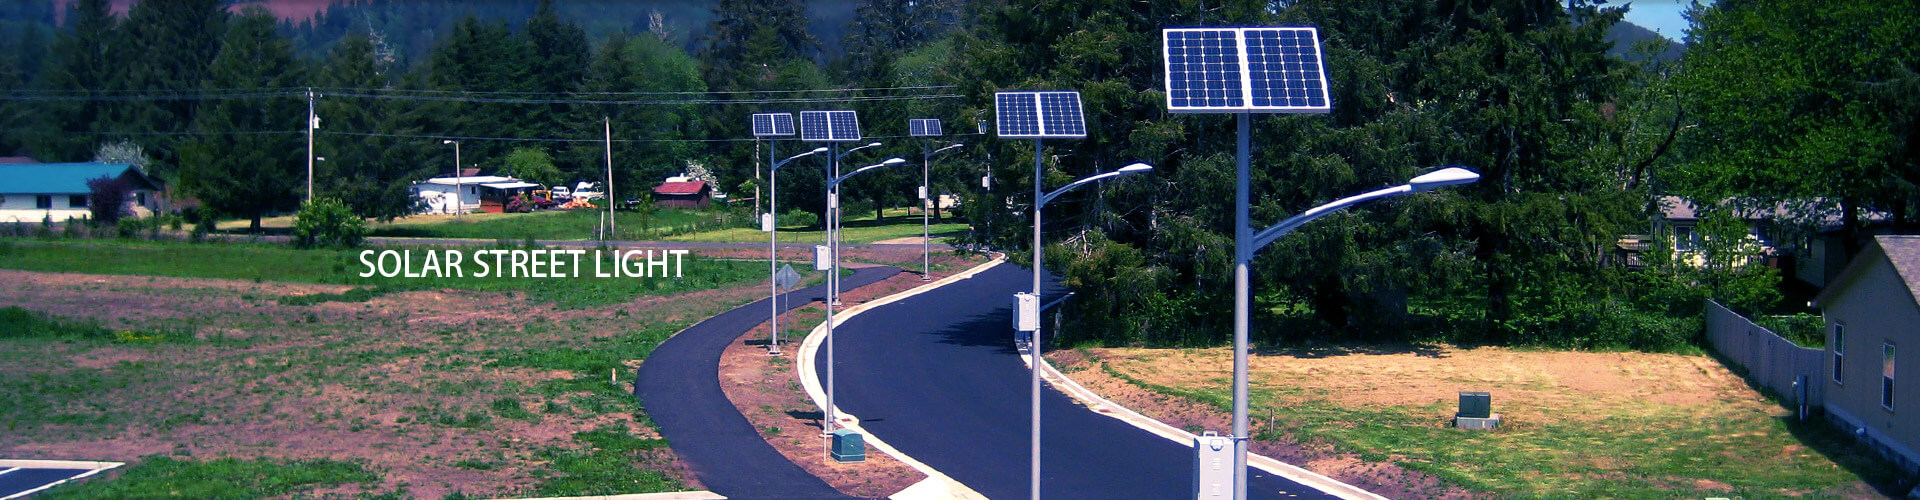 solar street light solution